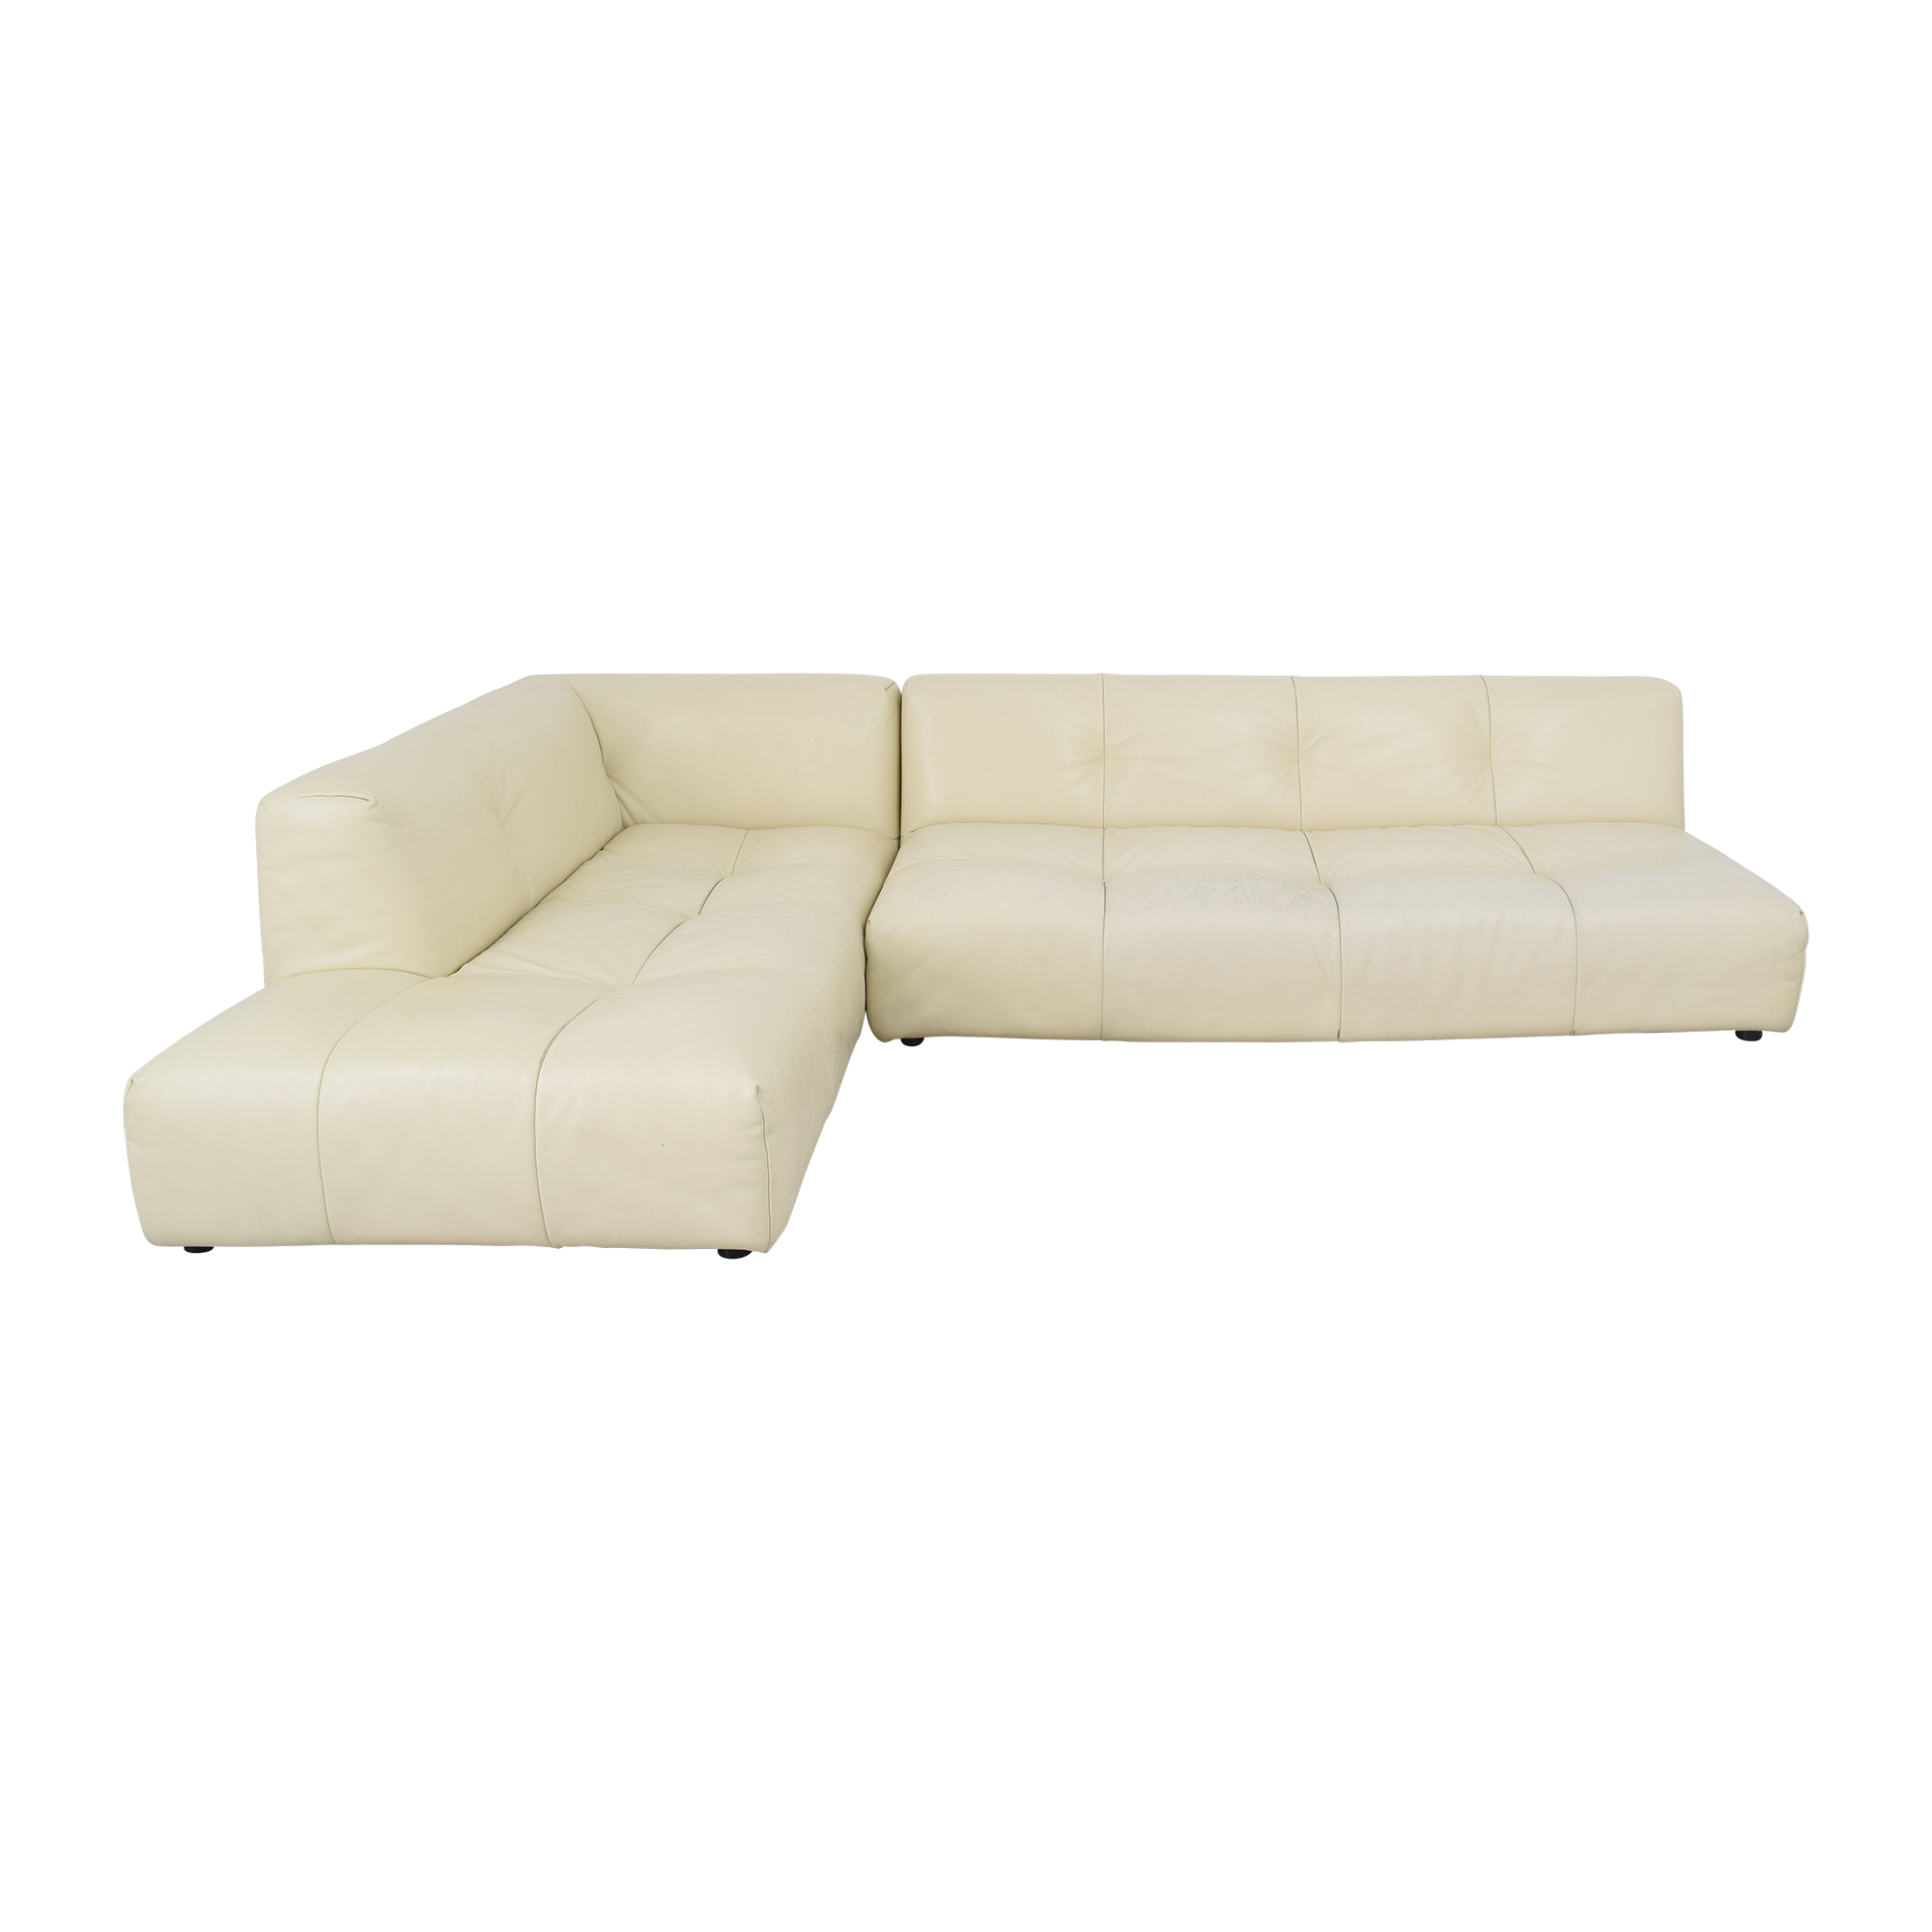 Roche Bobois Roche Bobois Sectional Sofa on sale